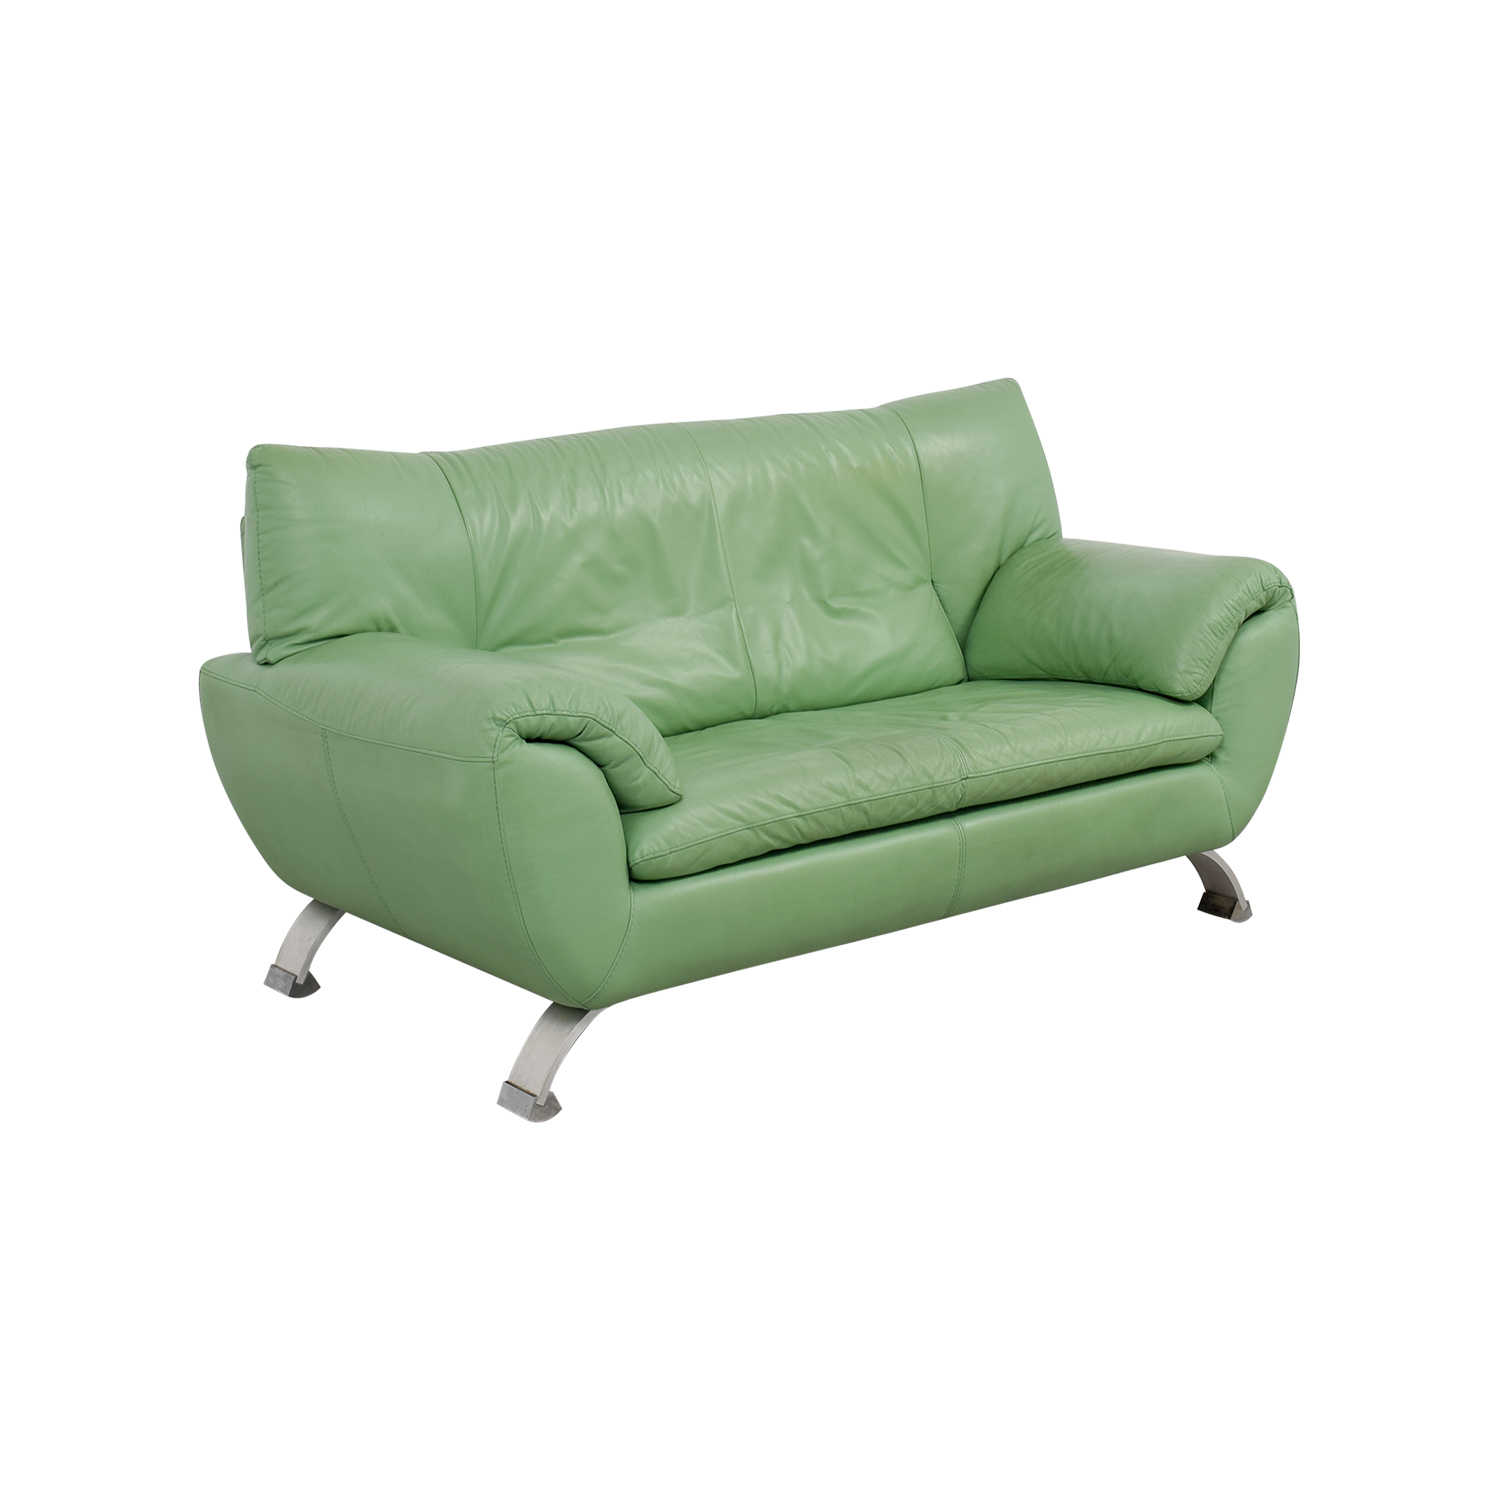 74 Off Nicoletti Nicoletti Leather Green Sofa Sofas